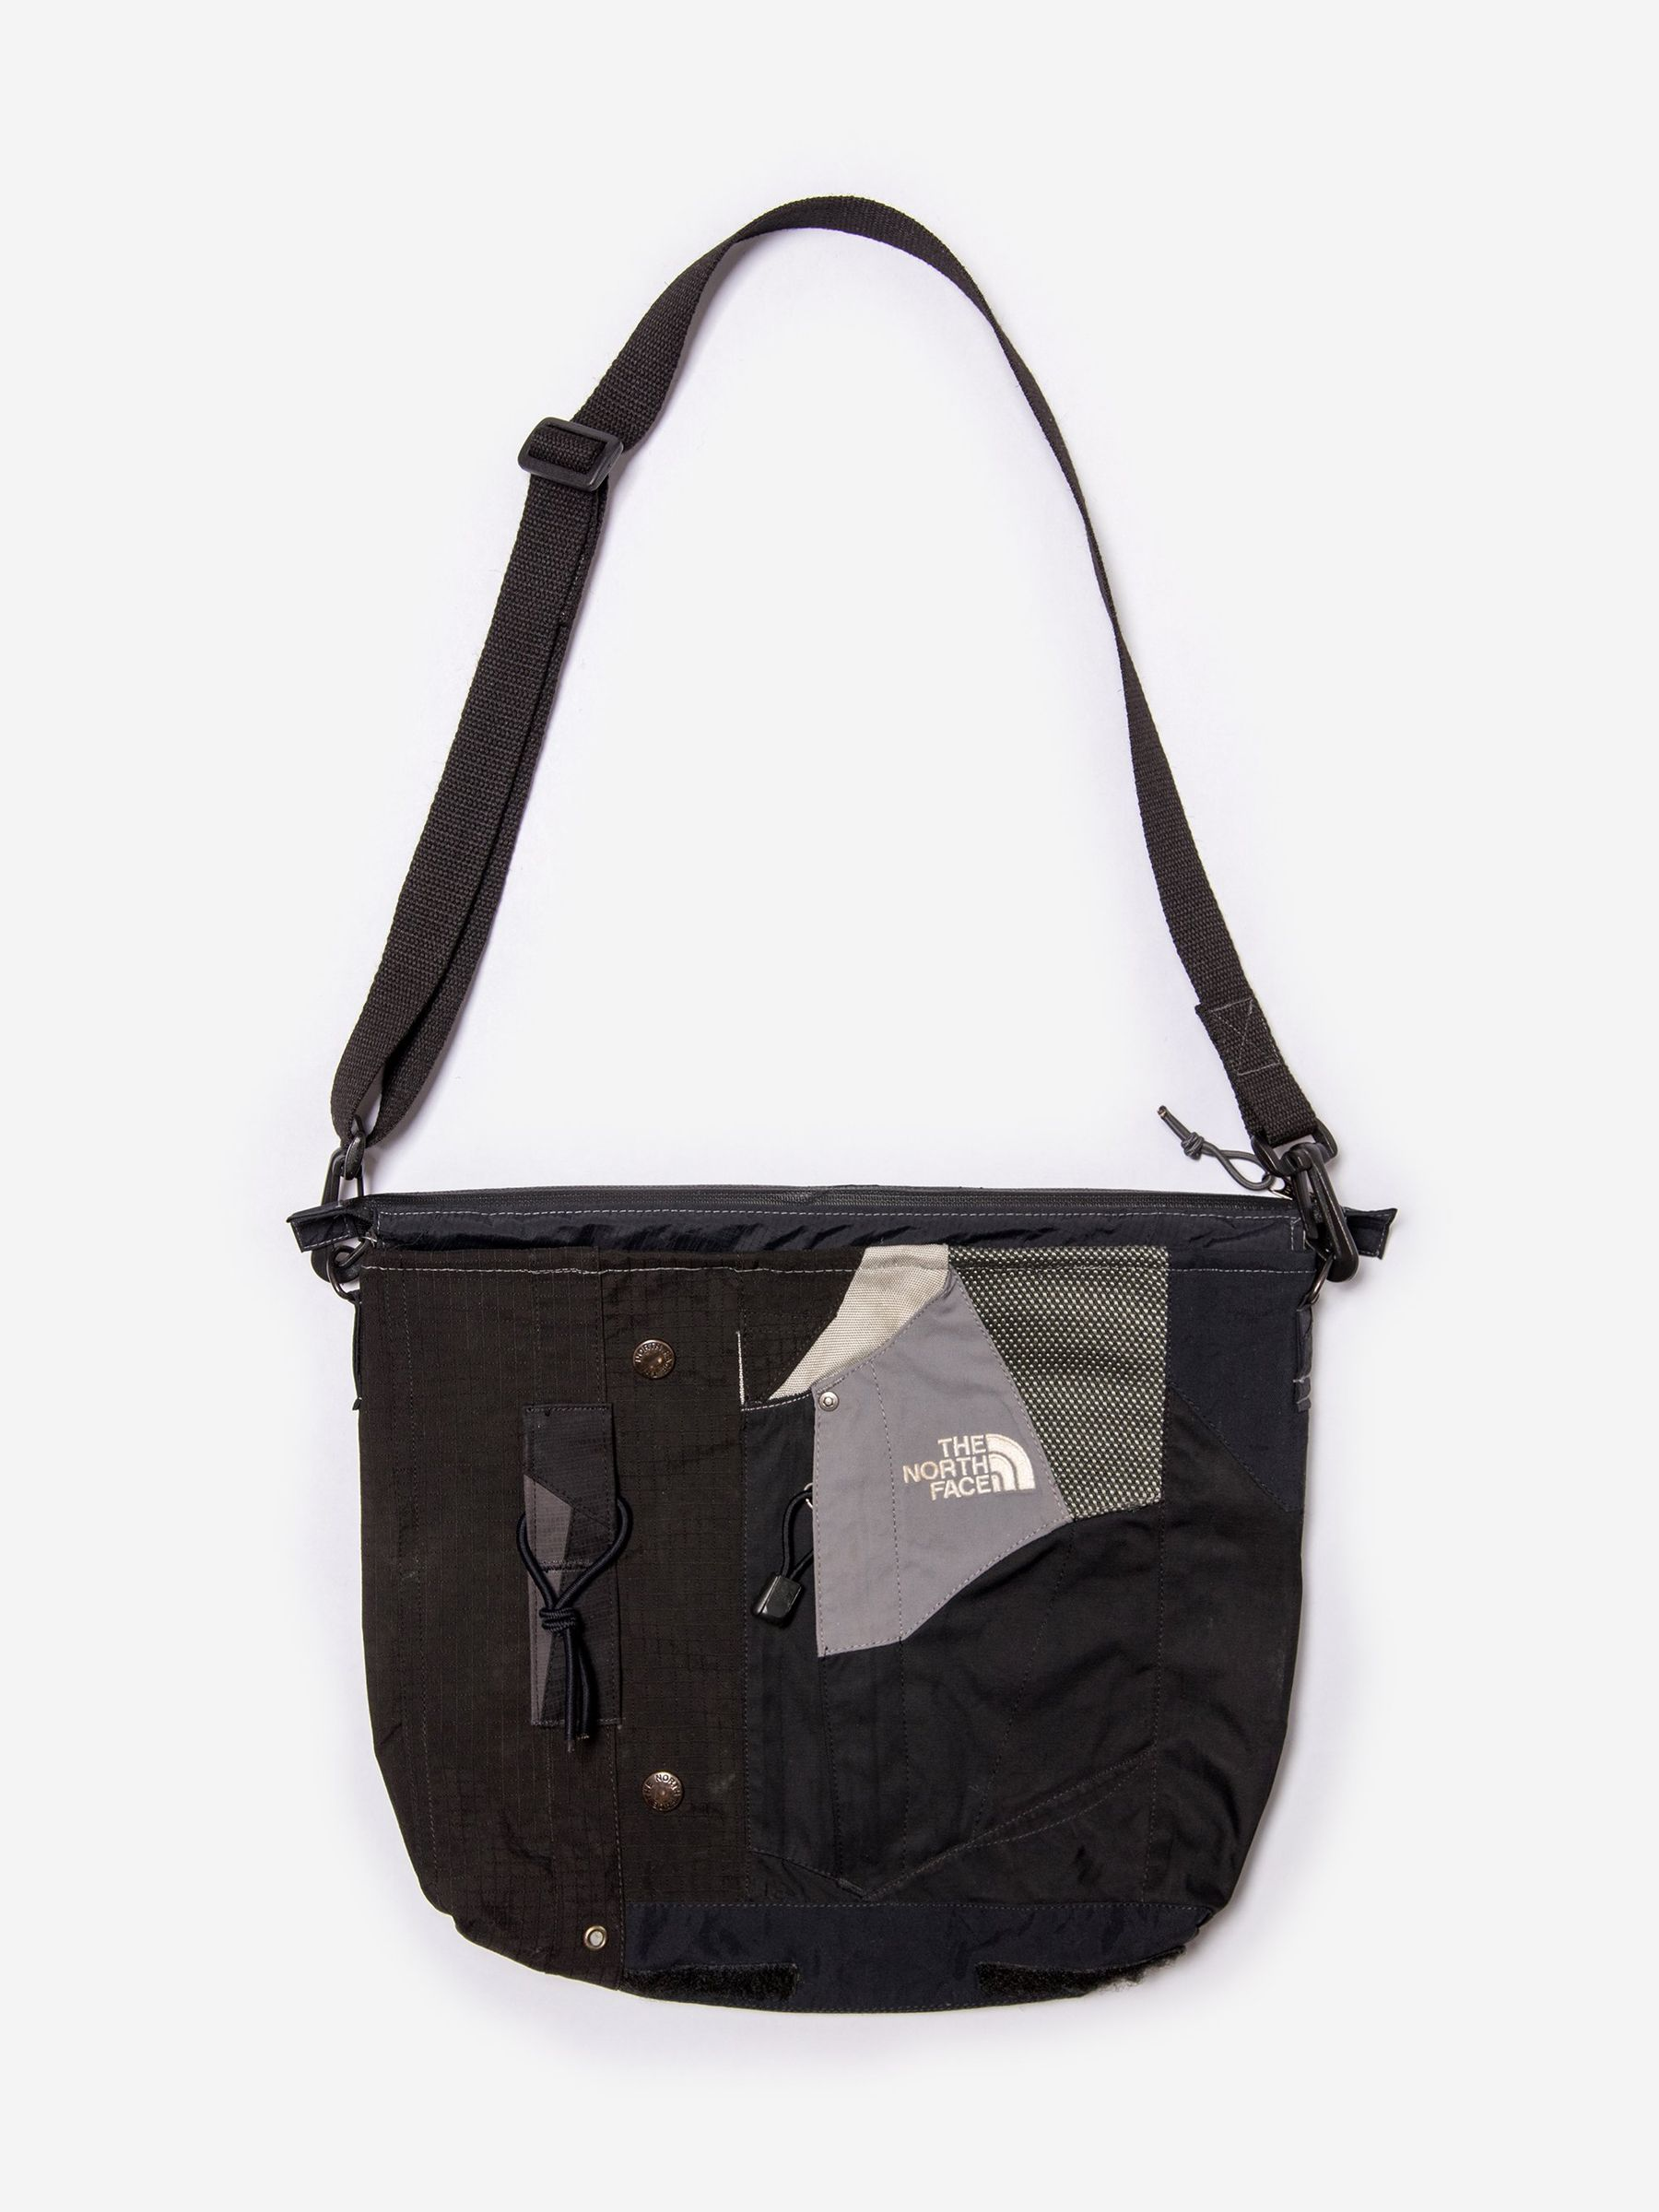 GREATER GOODS - Side Bag Multicolor - Image 7